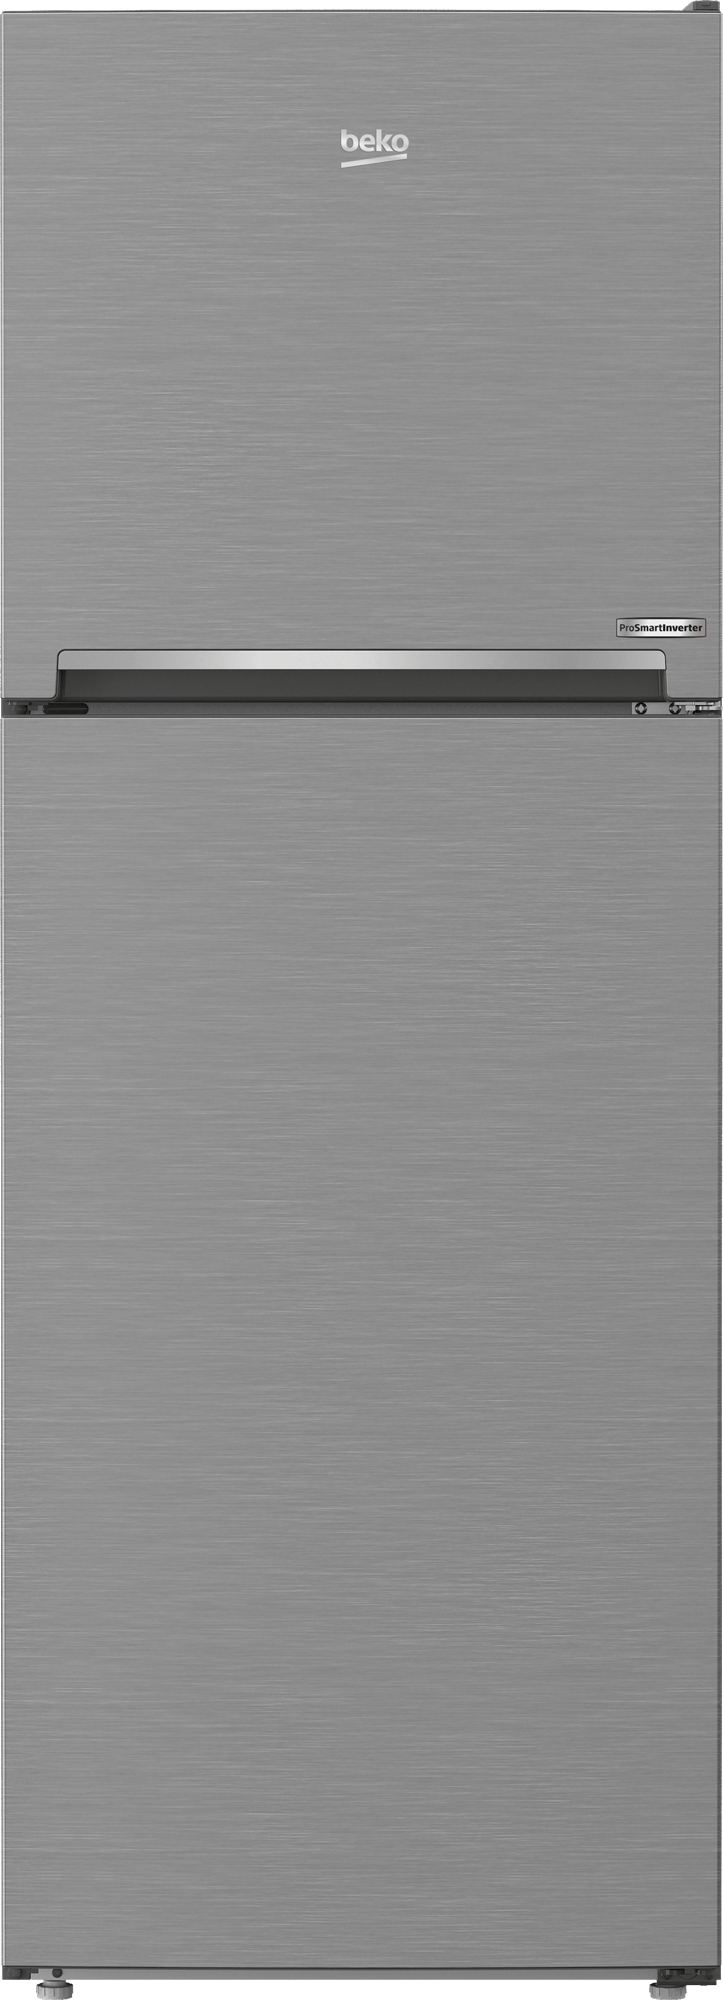 Fridge Freezer (Freezer Top, 60 cm) RDNT340I20VZP